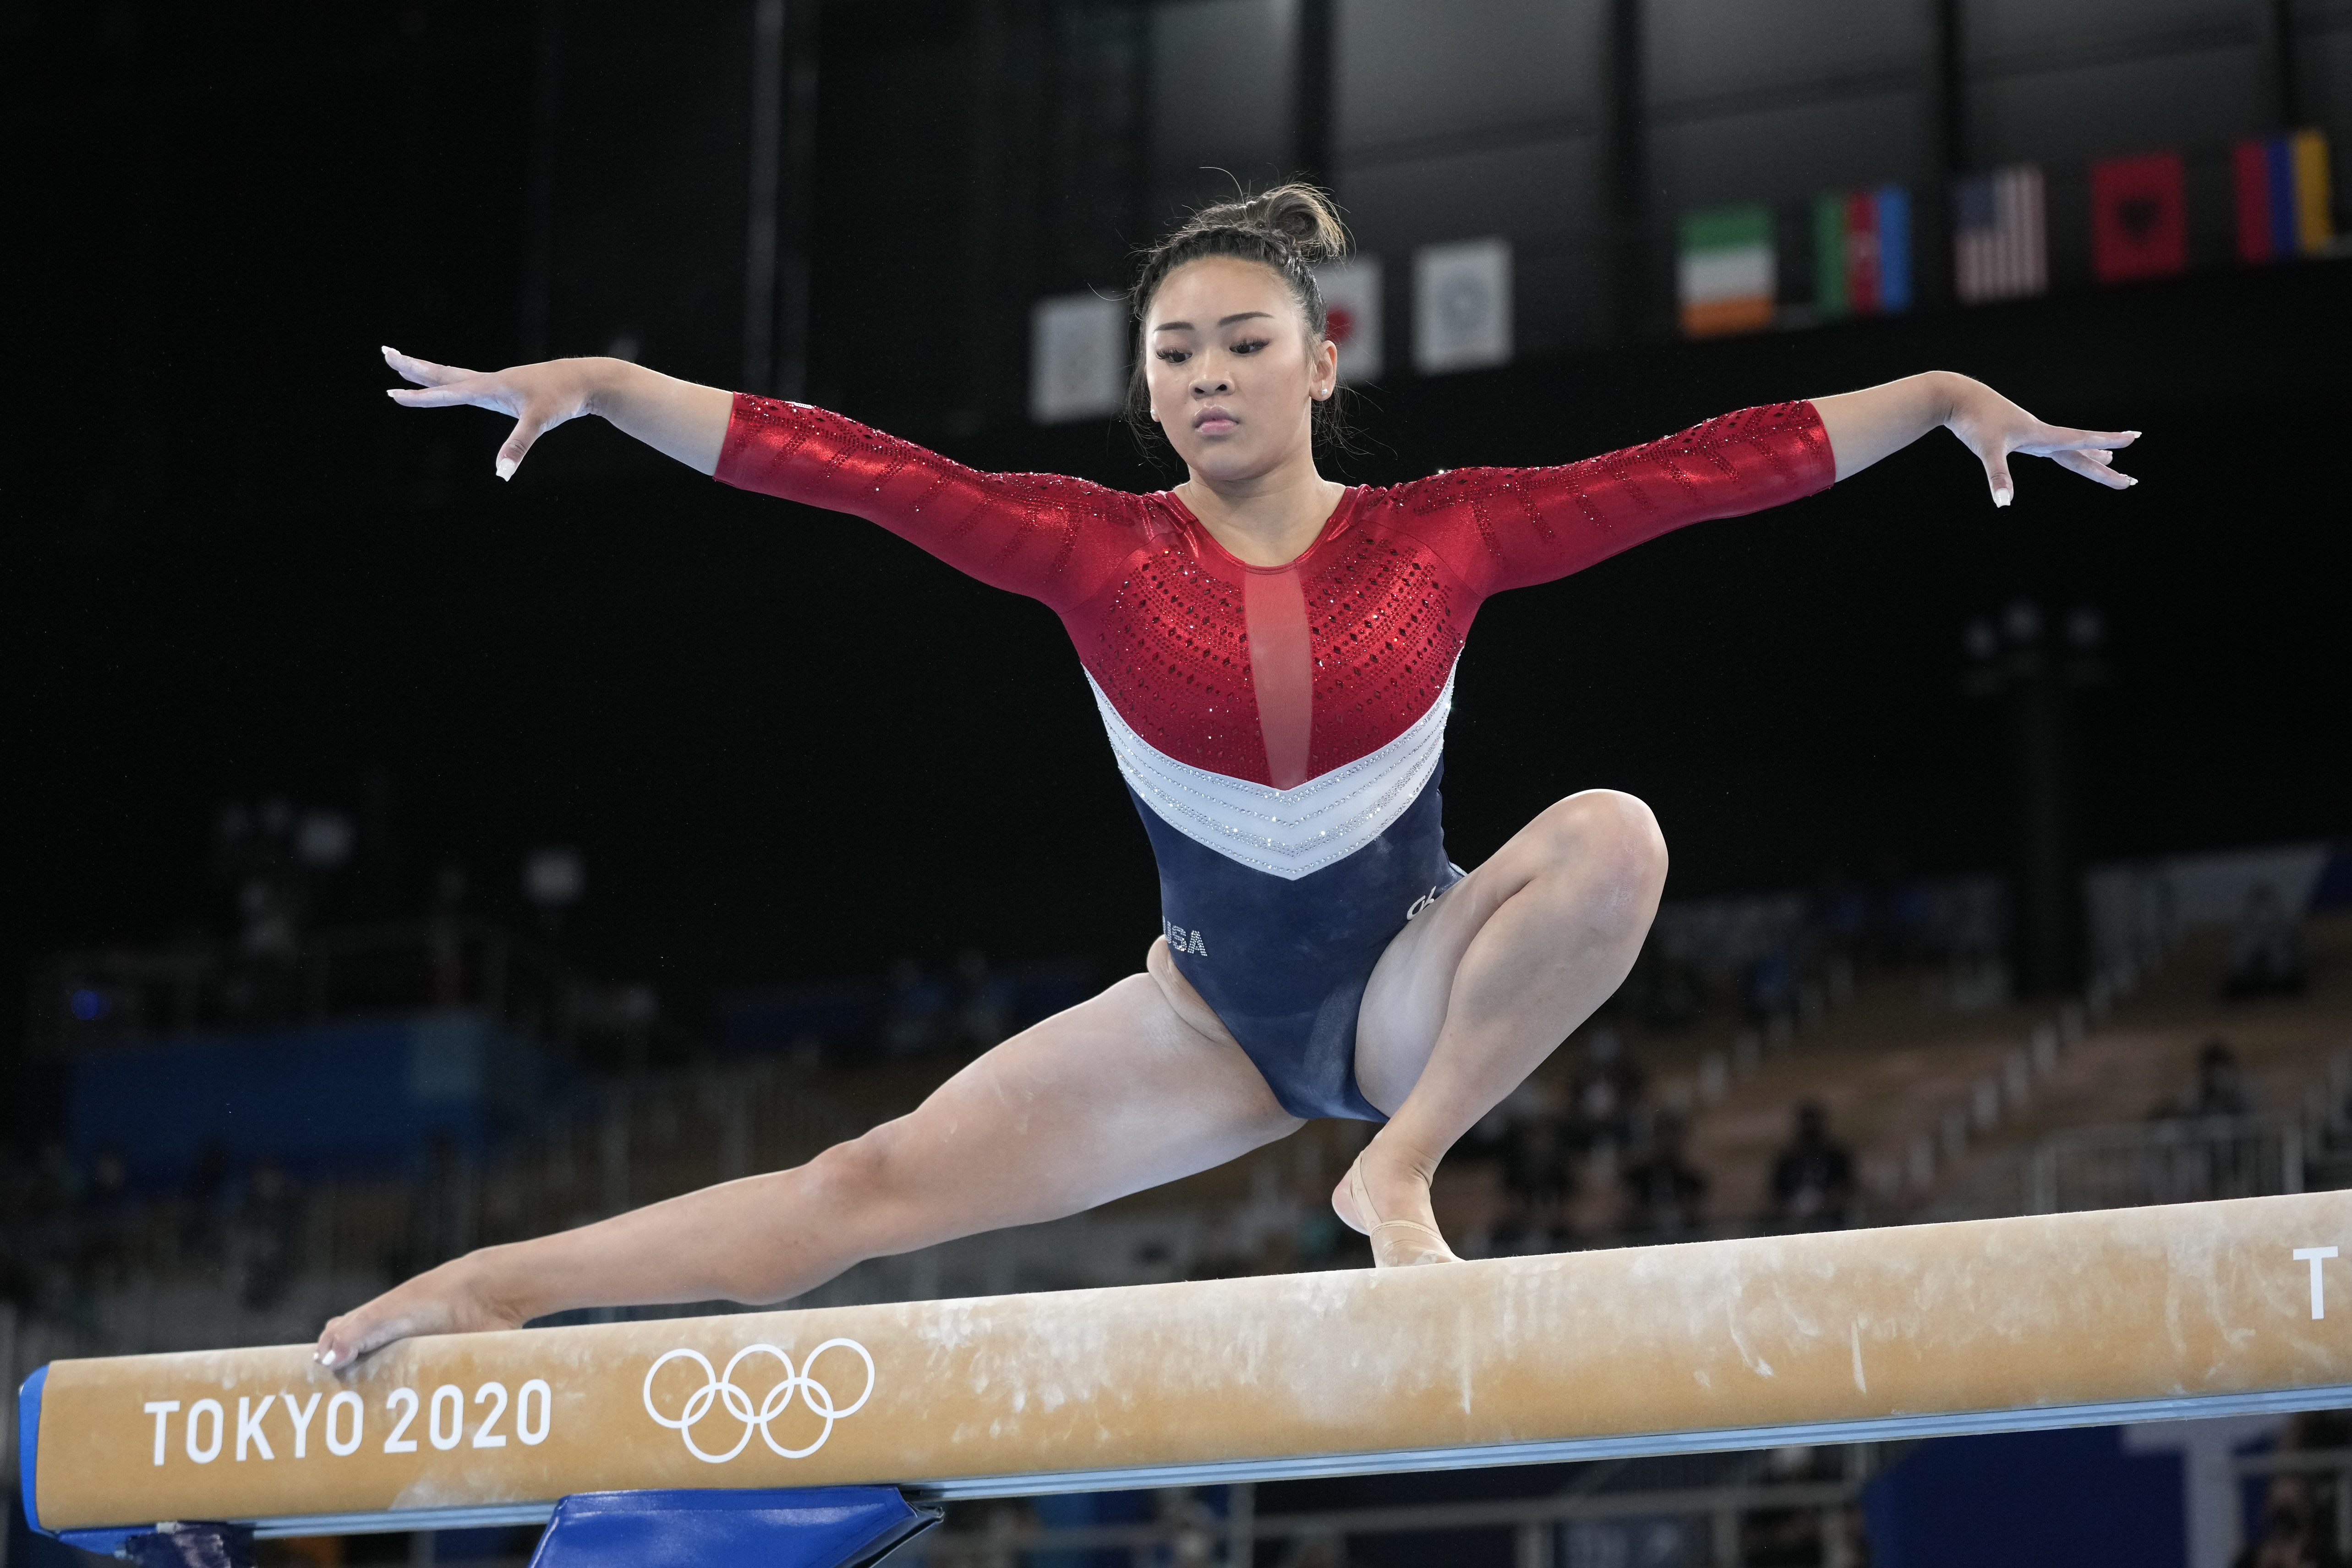 Sunisa Lee, of the United States, performs on the balance beam during the artistic gymnastics women's final at the 2020 Summer Olympics,